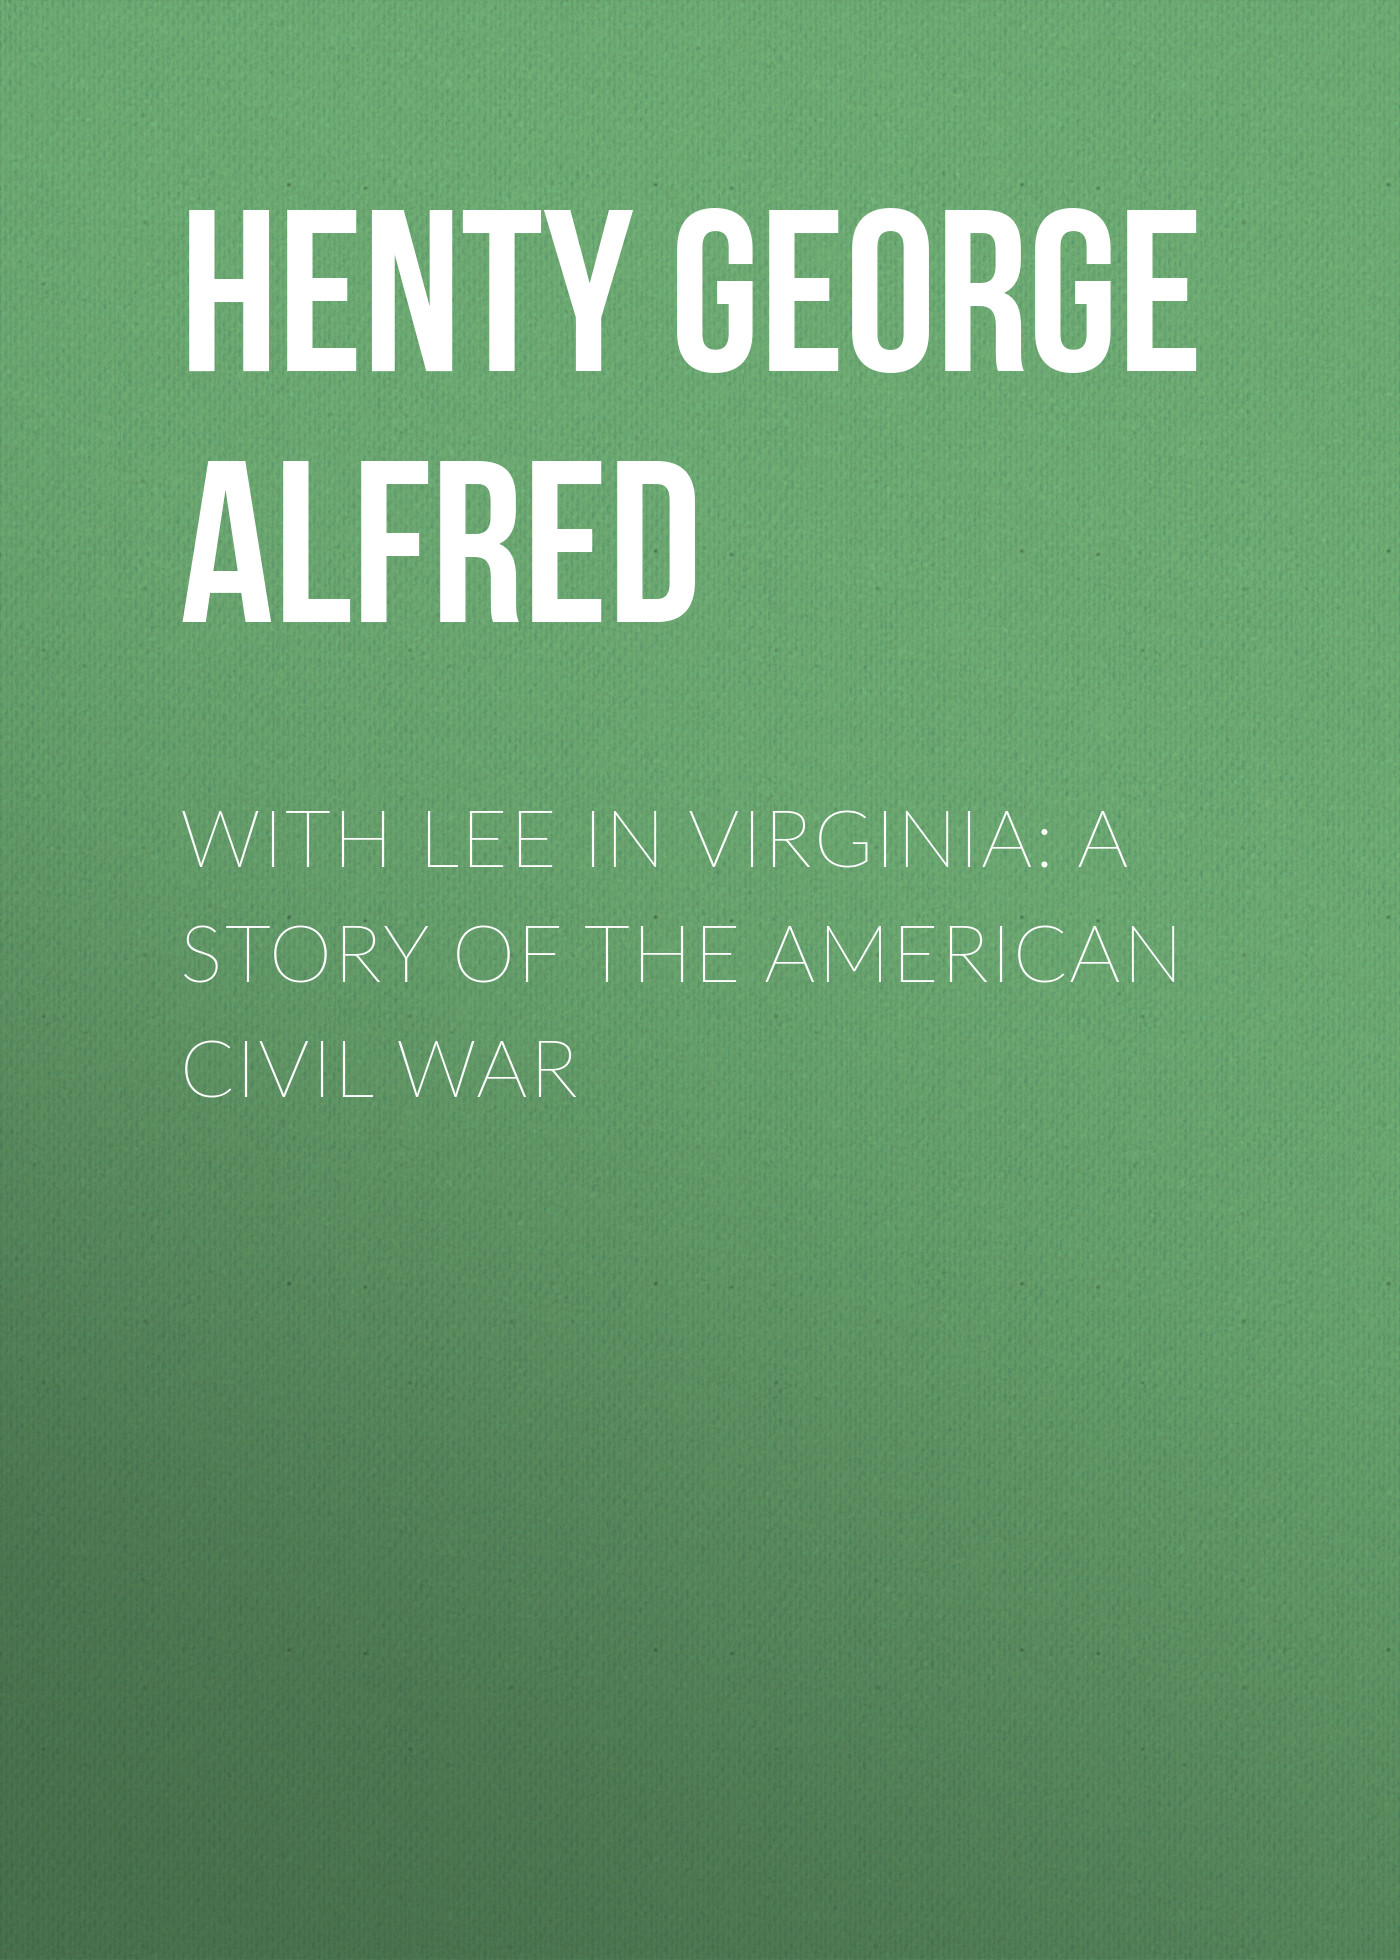 лучшая цена Henty George Alfred With Lee in Virginia: A Story of the American Civil War